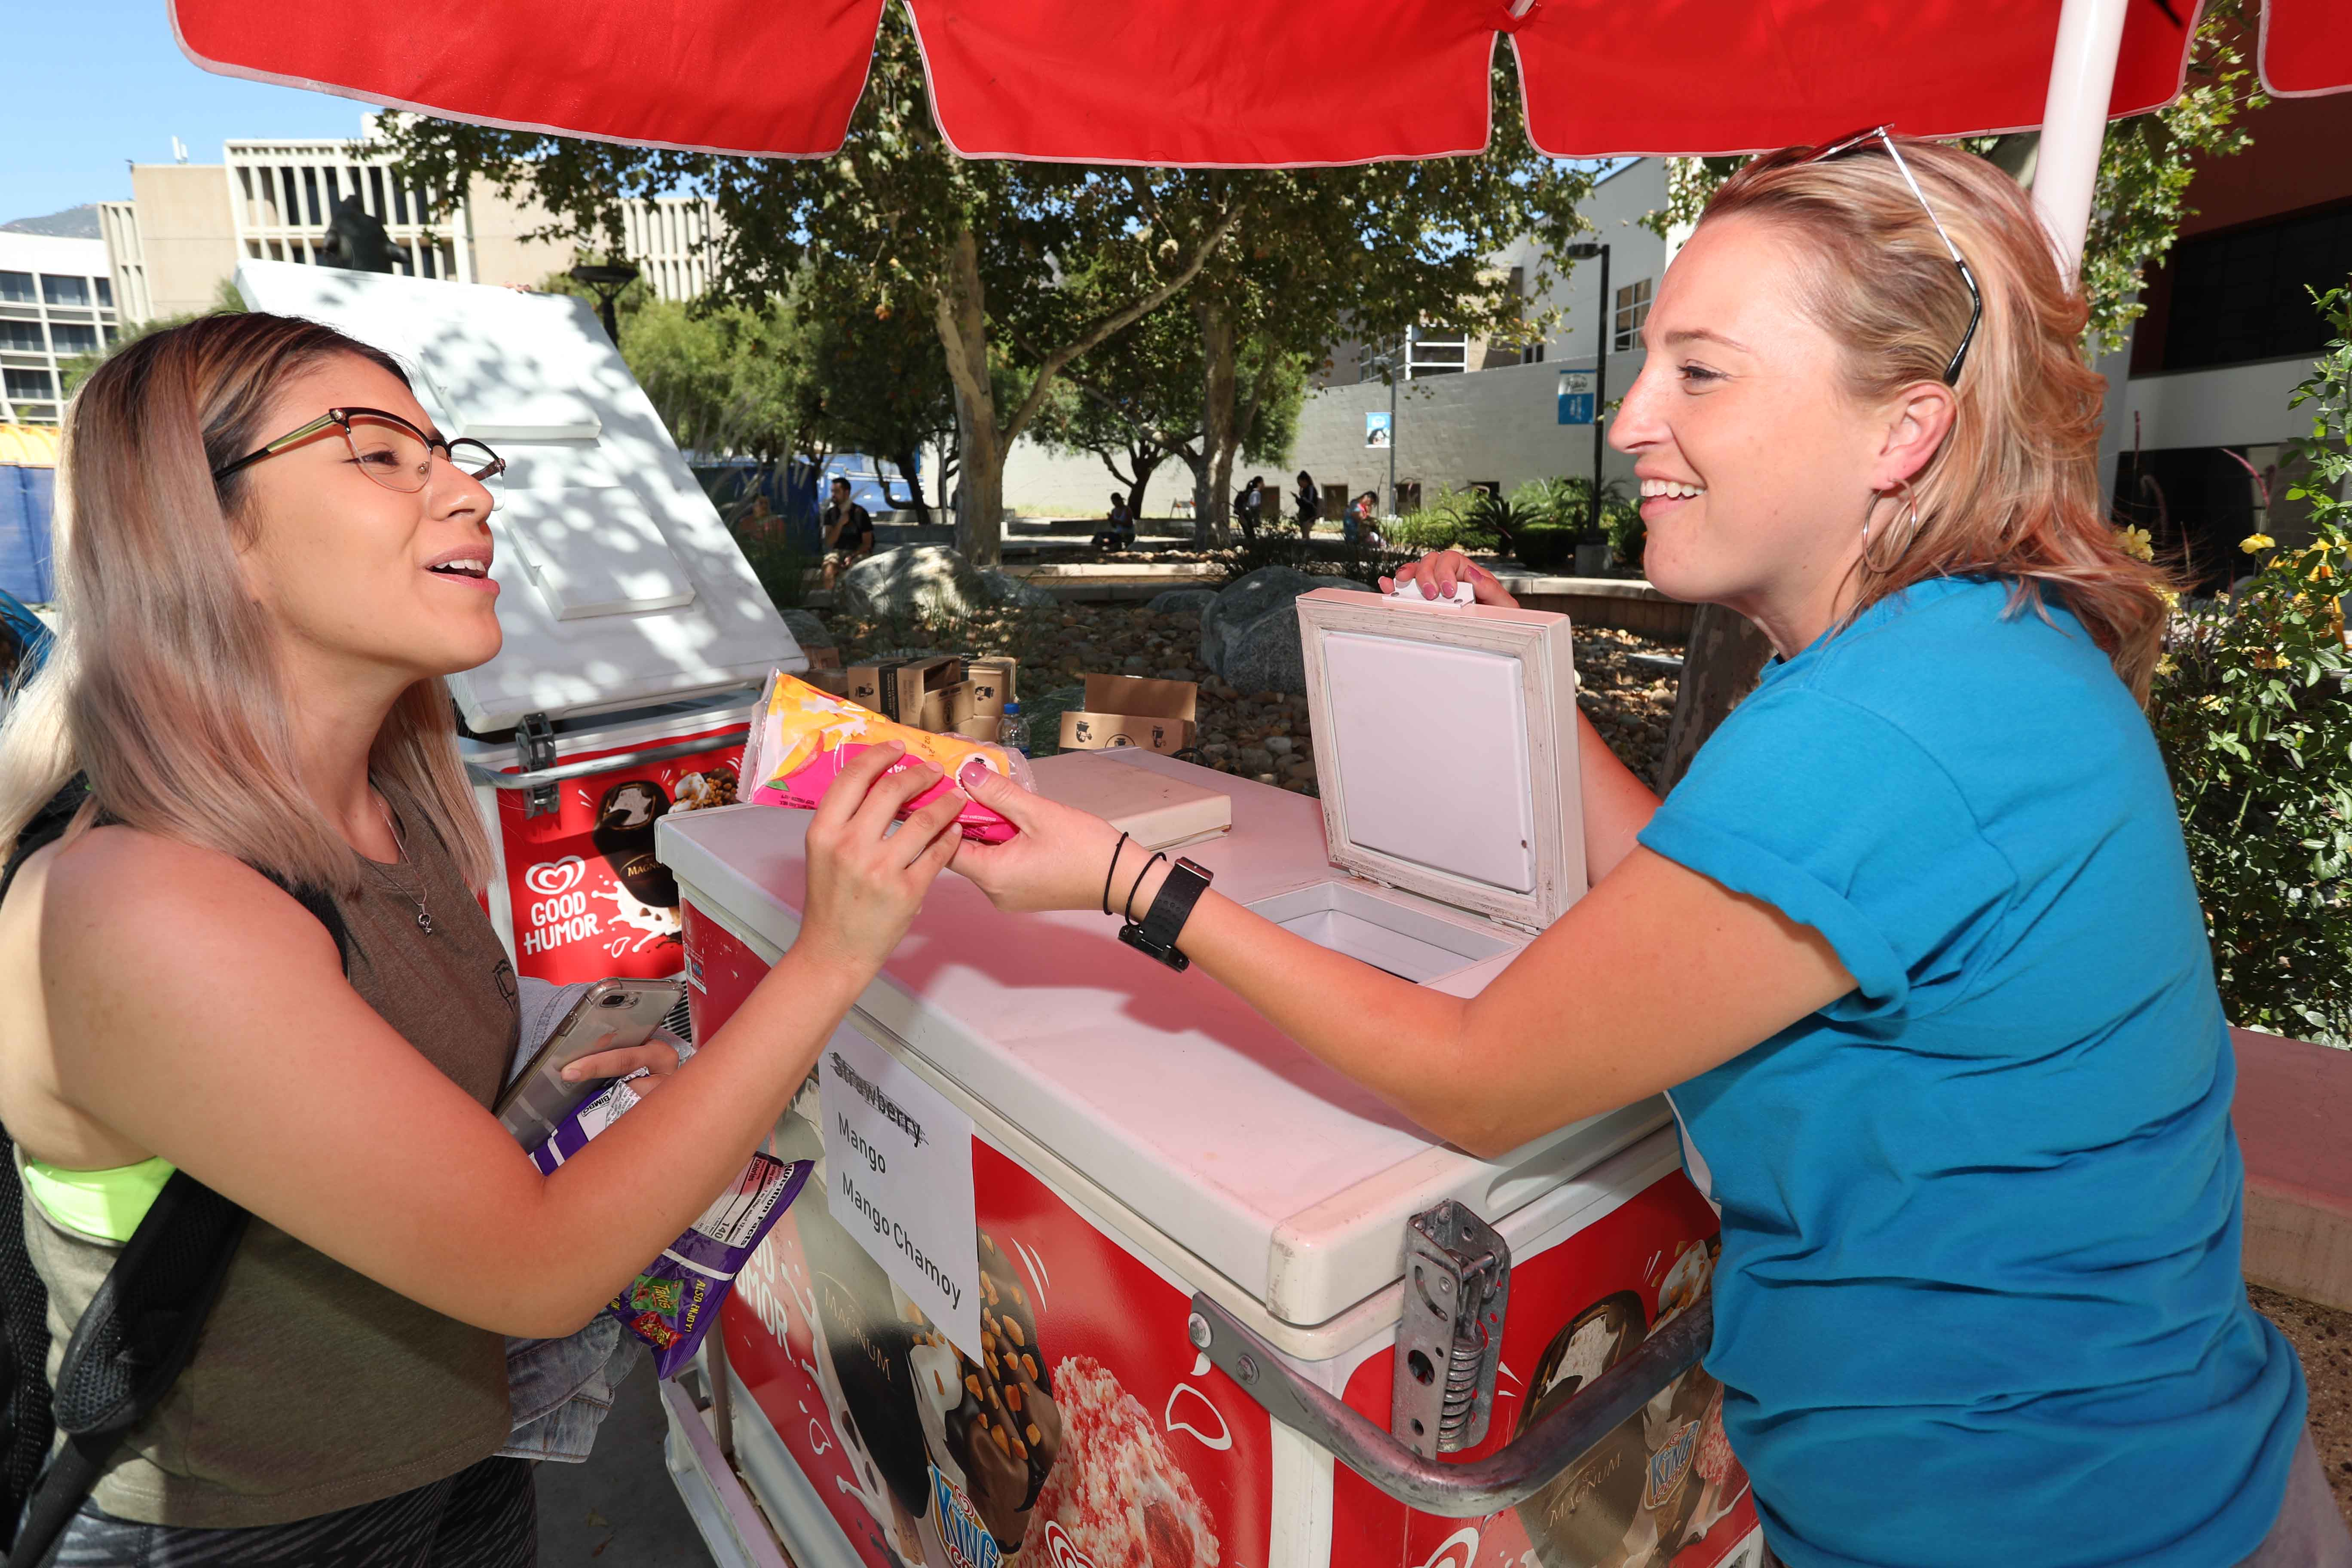 The Ask Me! campaign includes a series of information booths across campus during the first week of school to provide support, directions and answers to new and returning students.